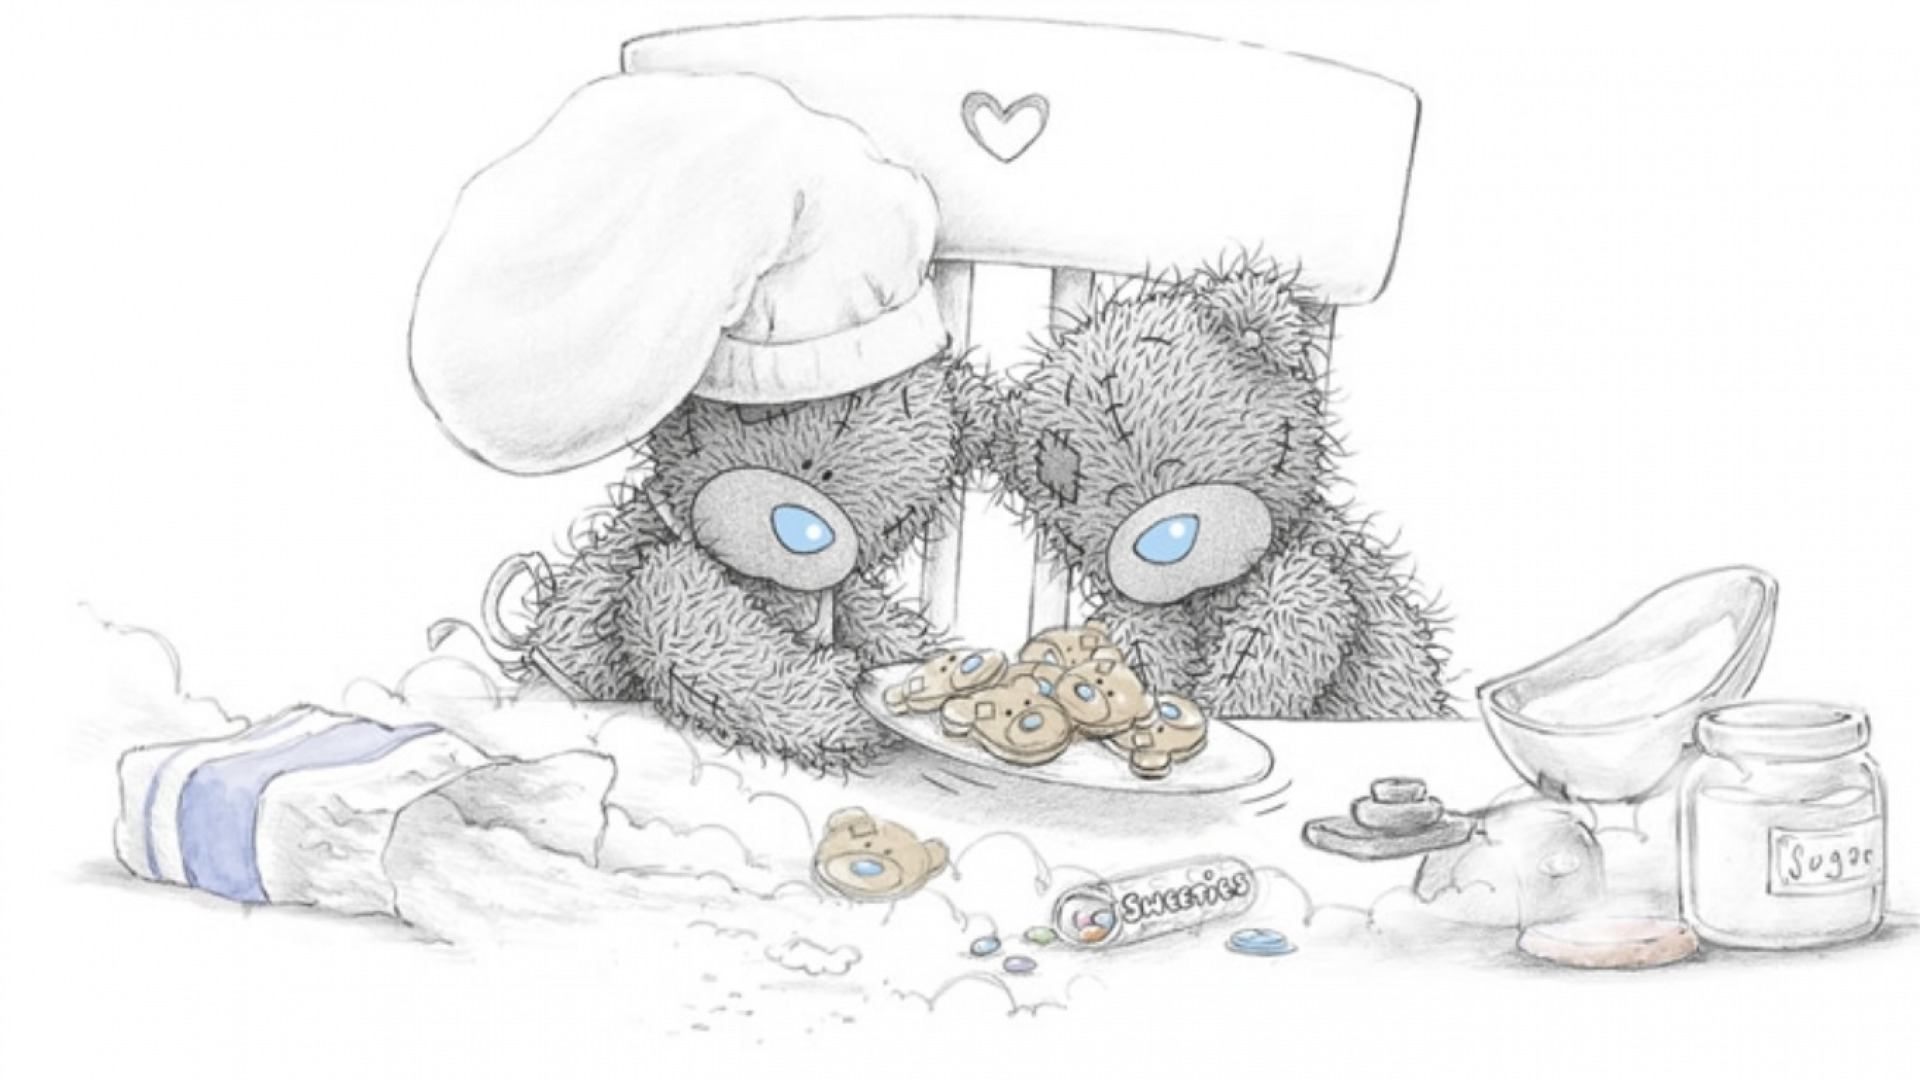 Free Wallpapers Of Cute Teddy Bears 1920x1080 Tatty Teddy Four Desktop Pc And Mac Wallpaper